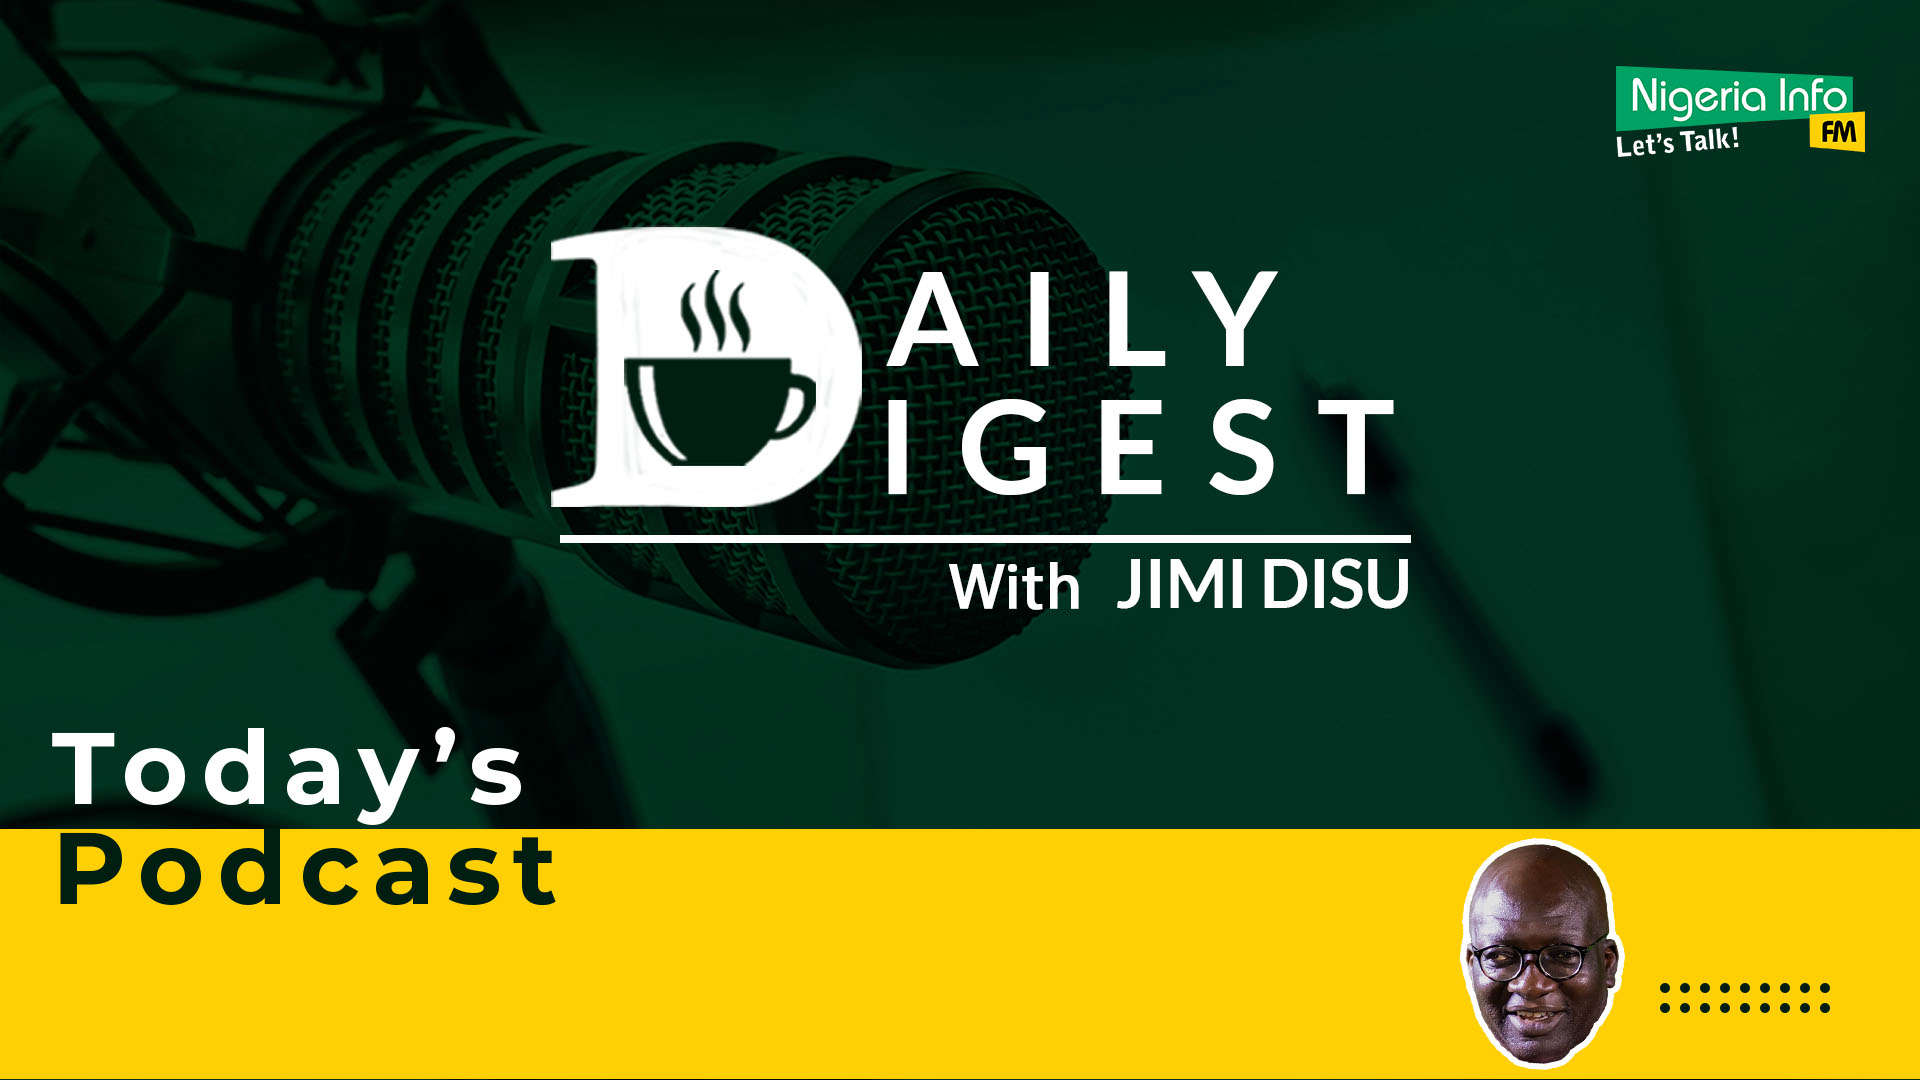 The Daily Digest with Jimi Disu